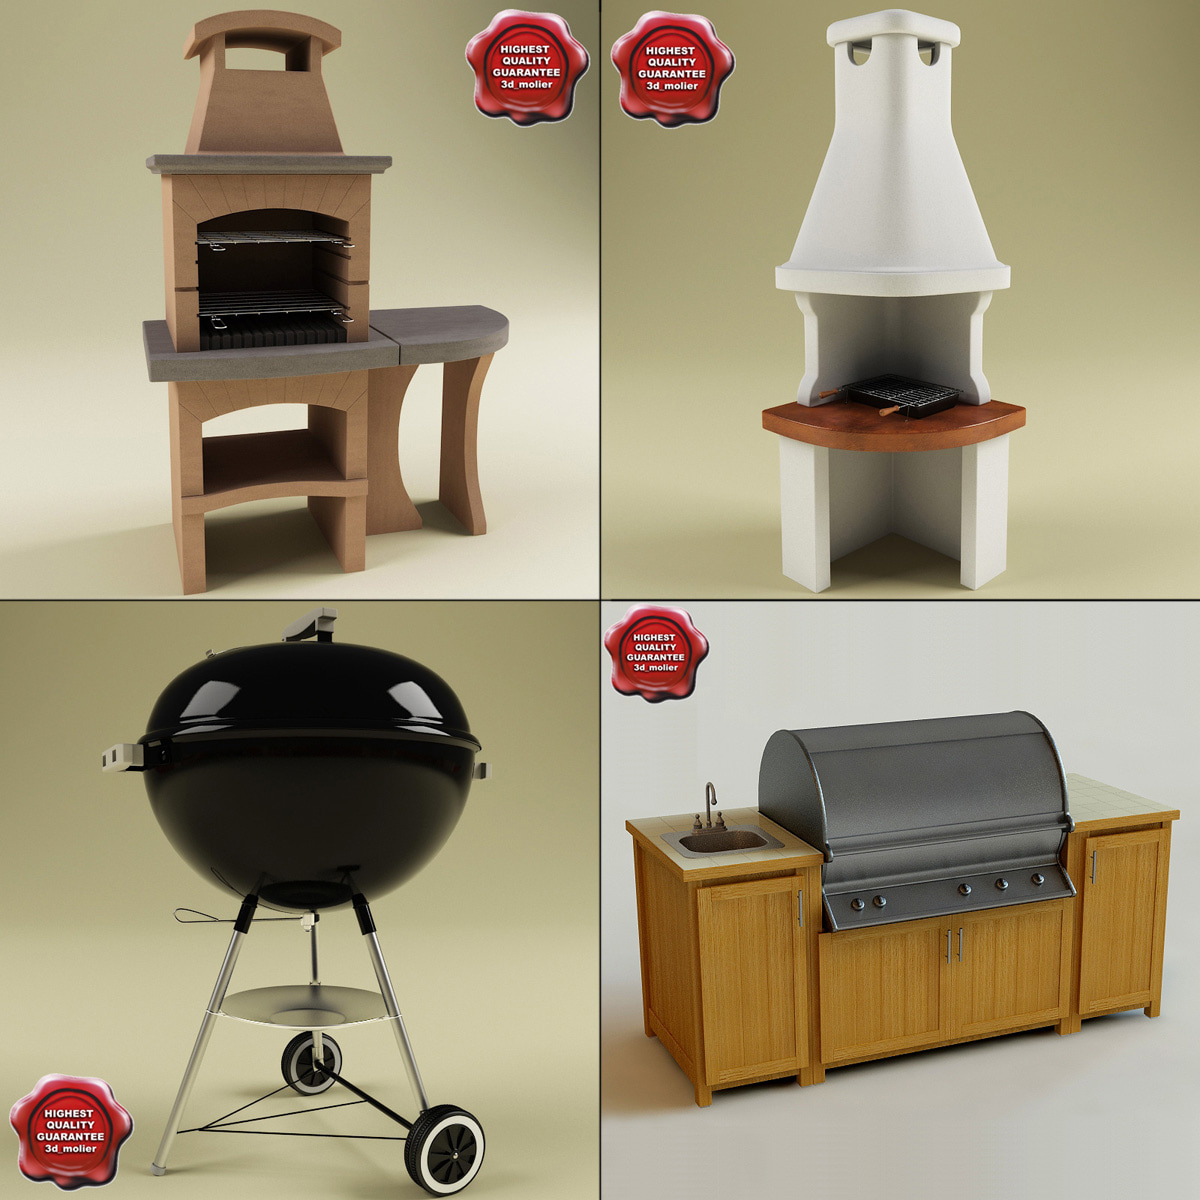 3dsmax barbecue outdoor modelled